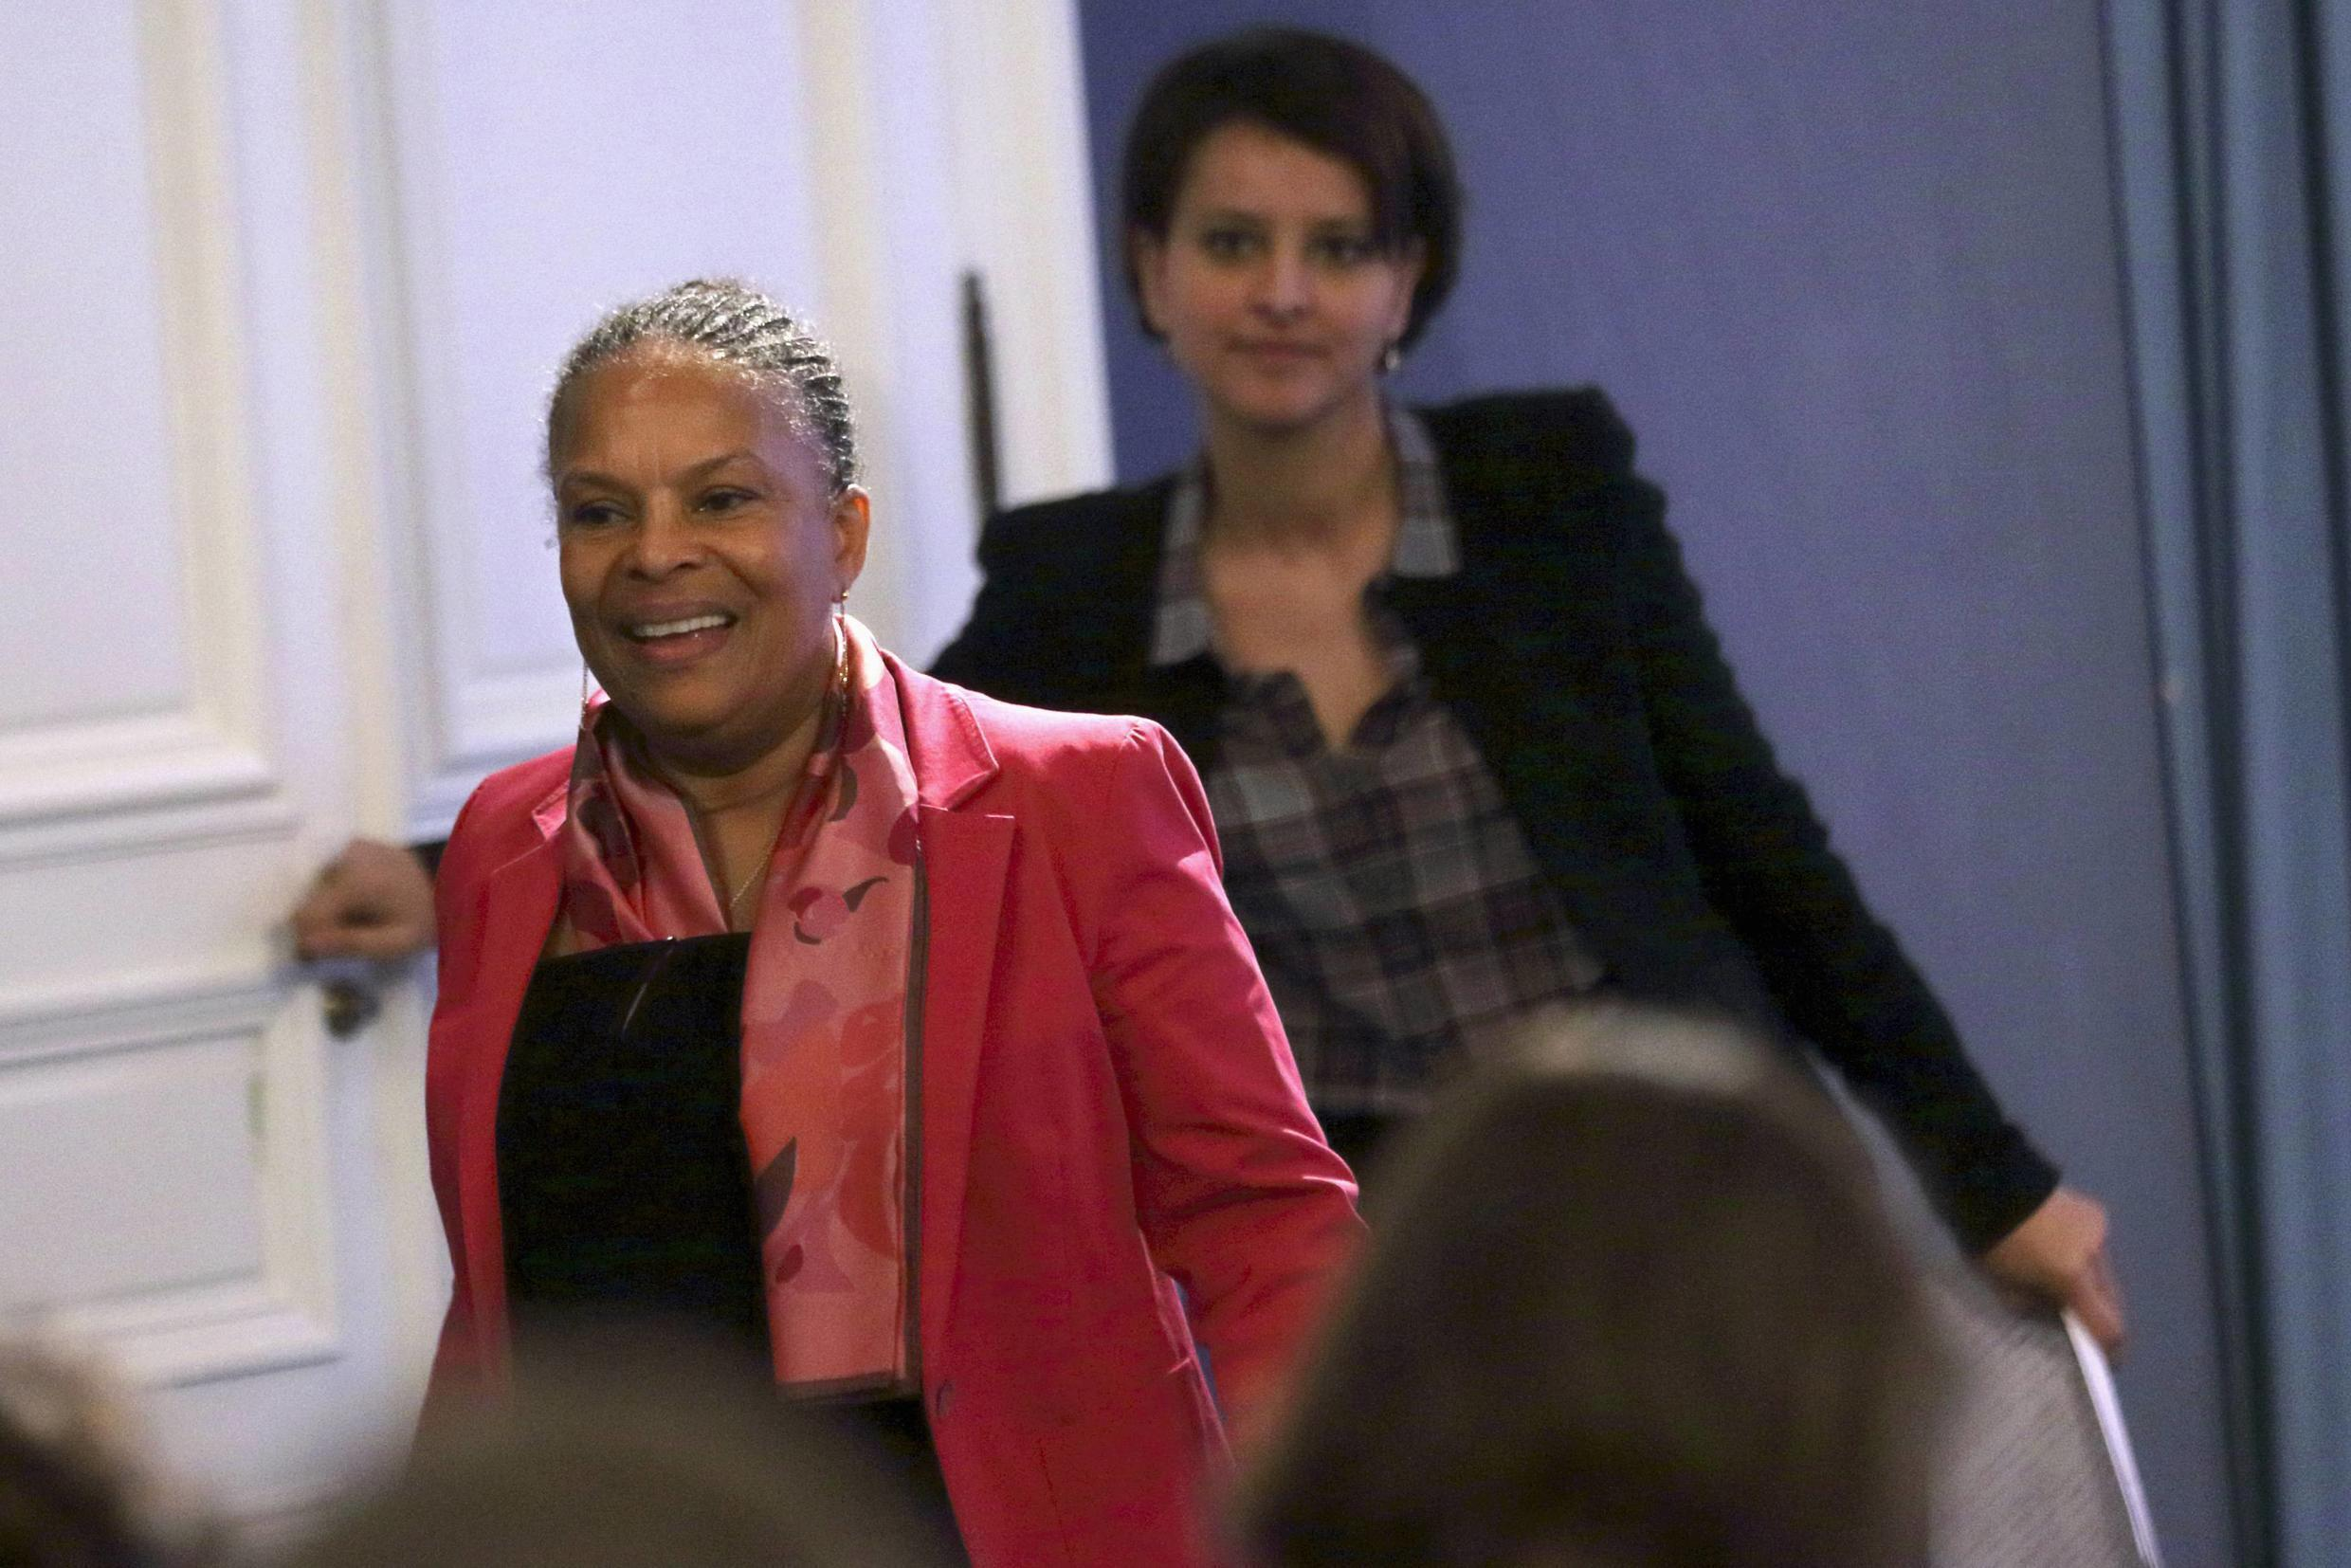 Education Minister Najat Vallaud-Belkacem (R) with Justice Minister Christiane Taubira, who has also been attacked by the far right